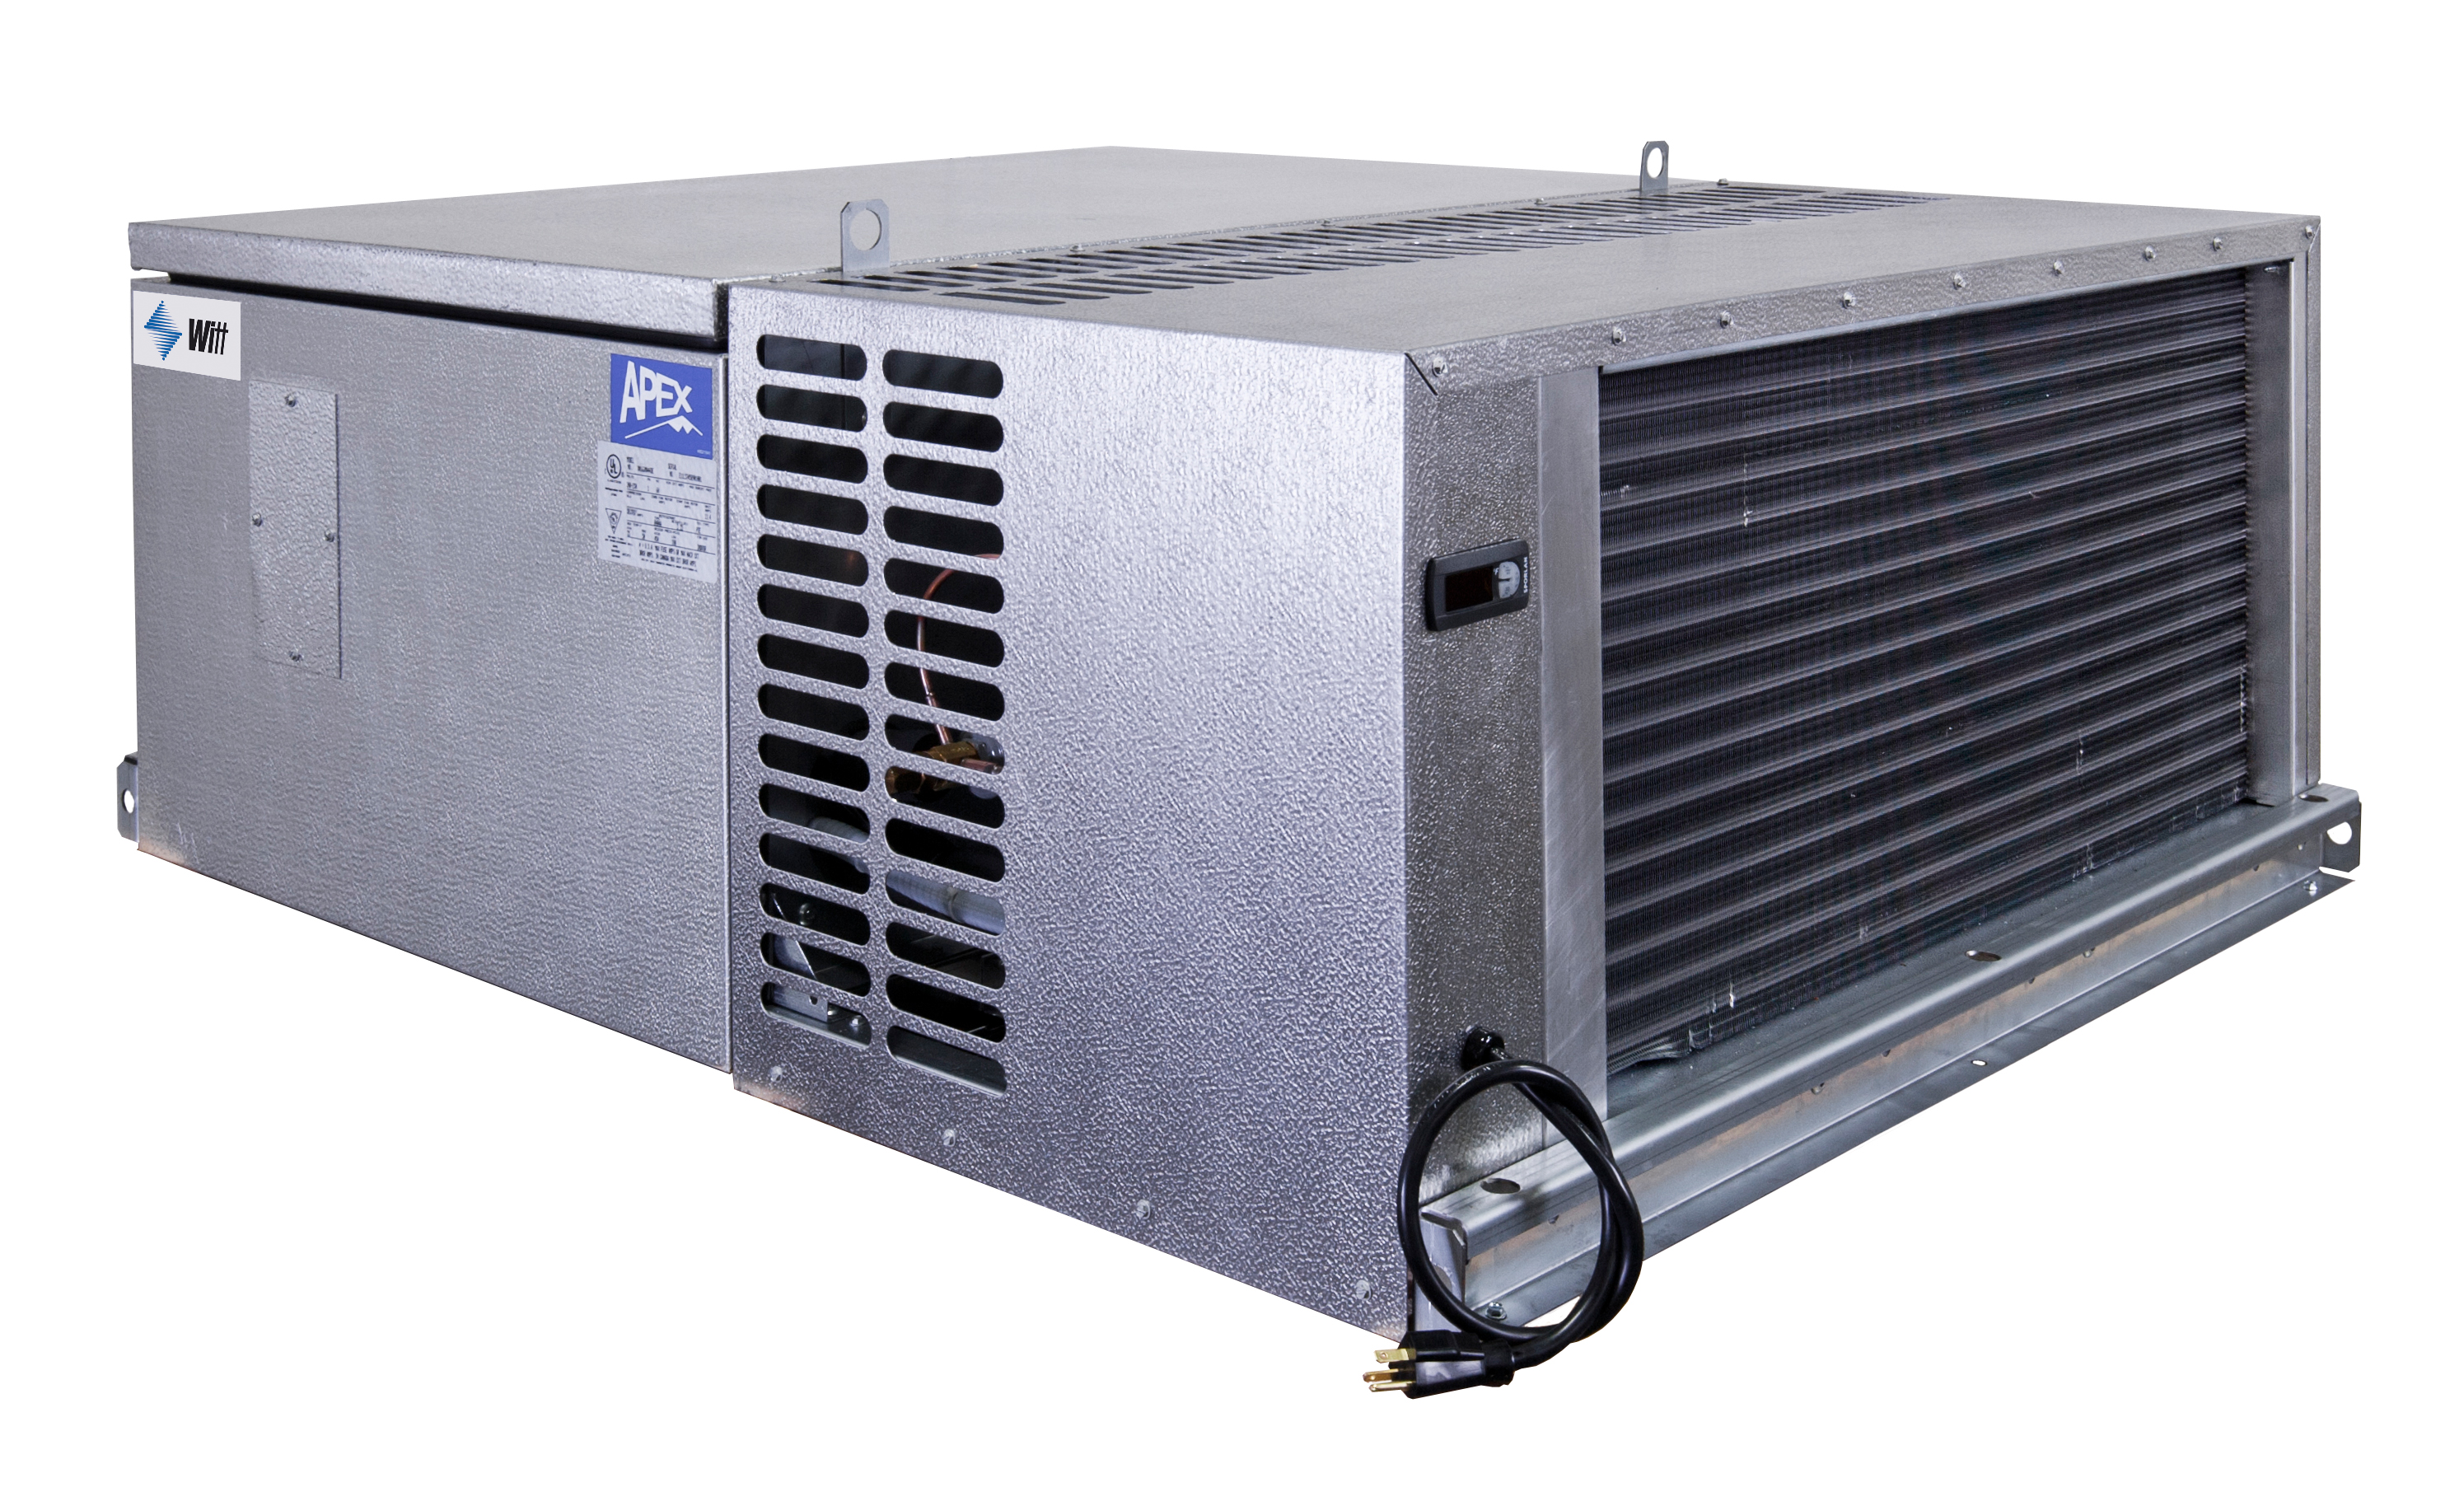 APEX Packaged System